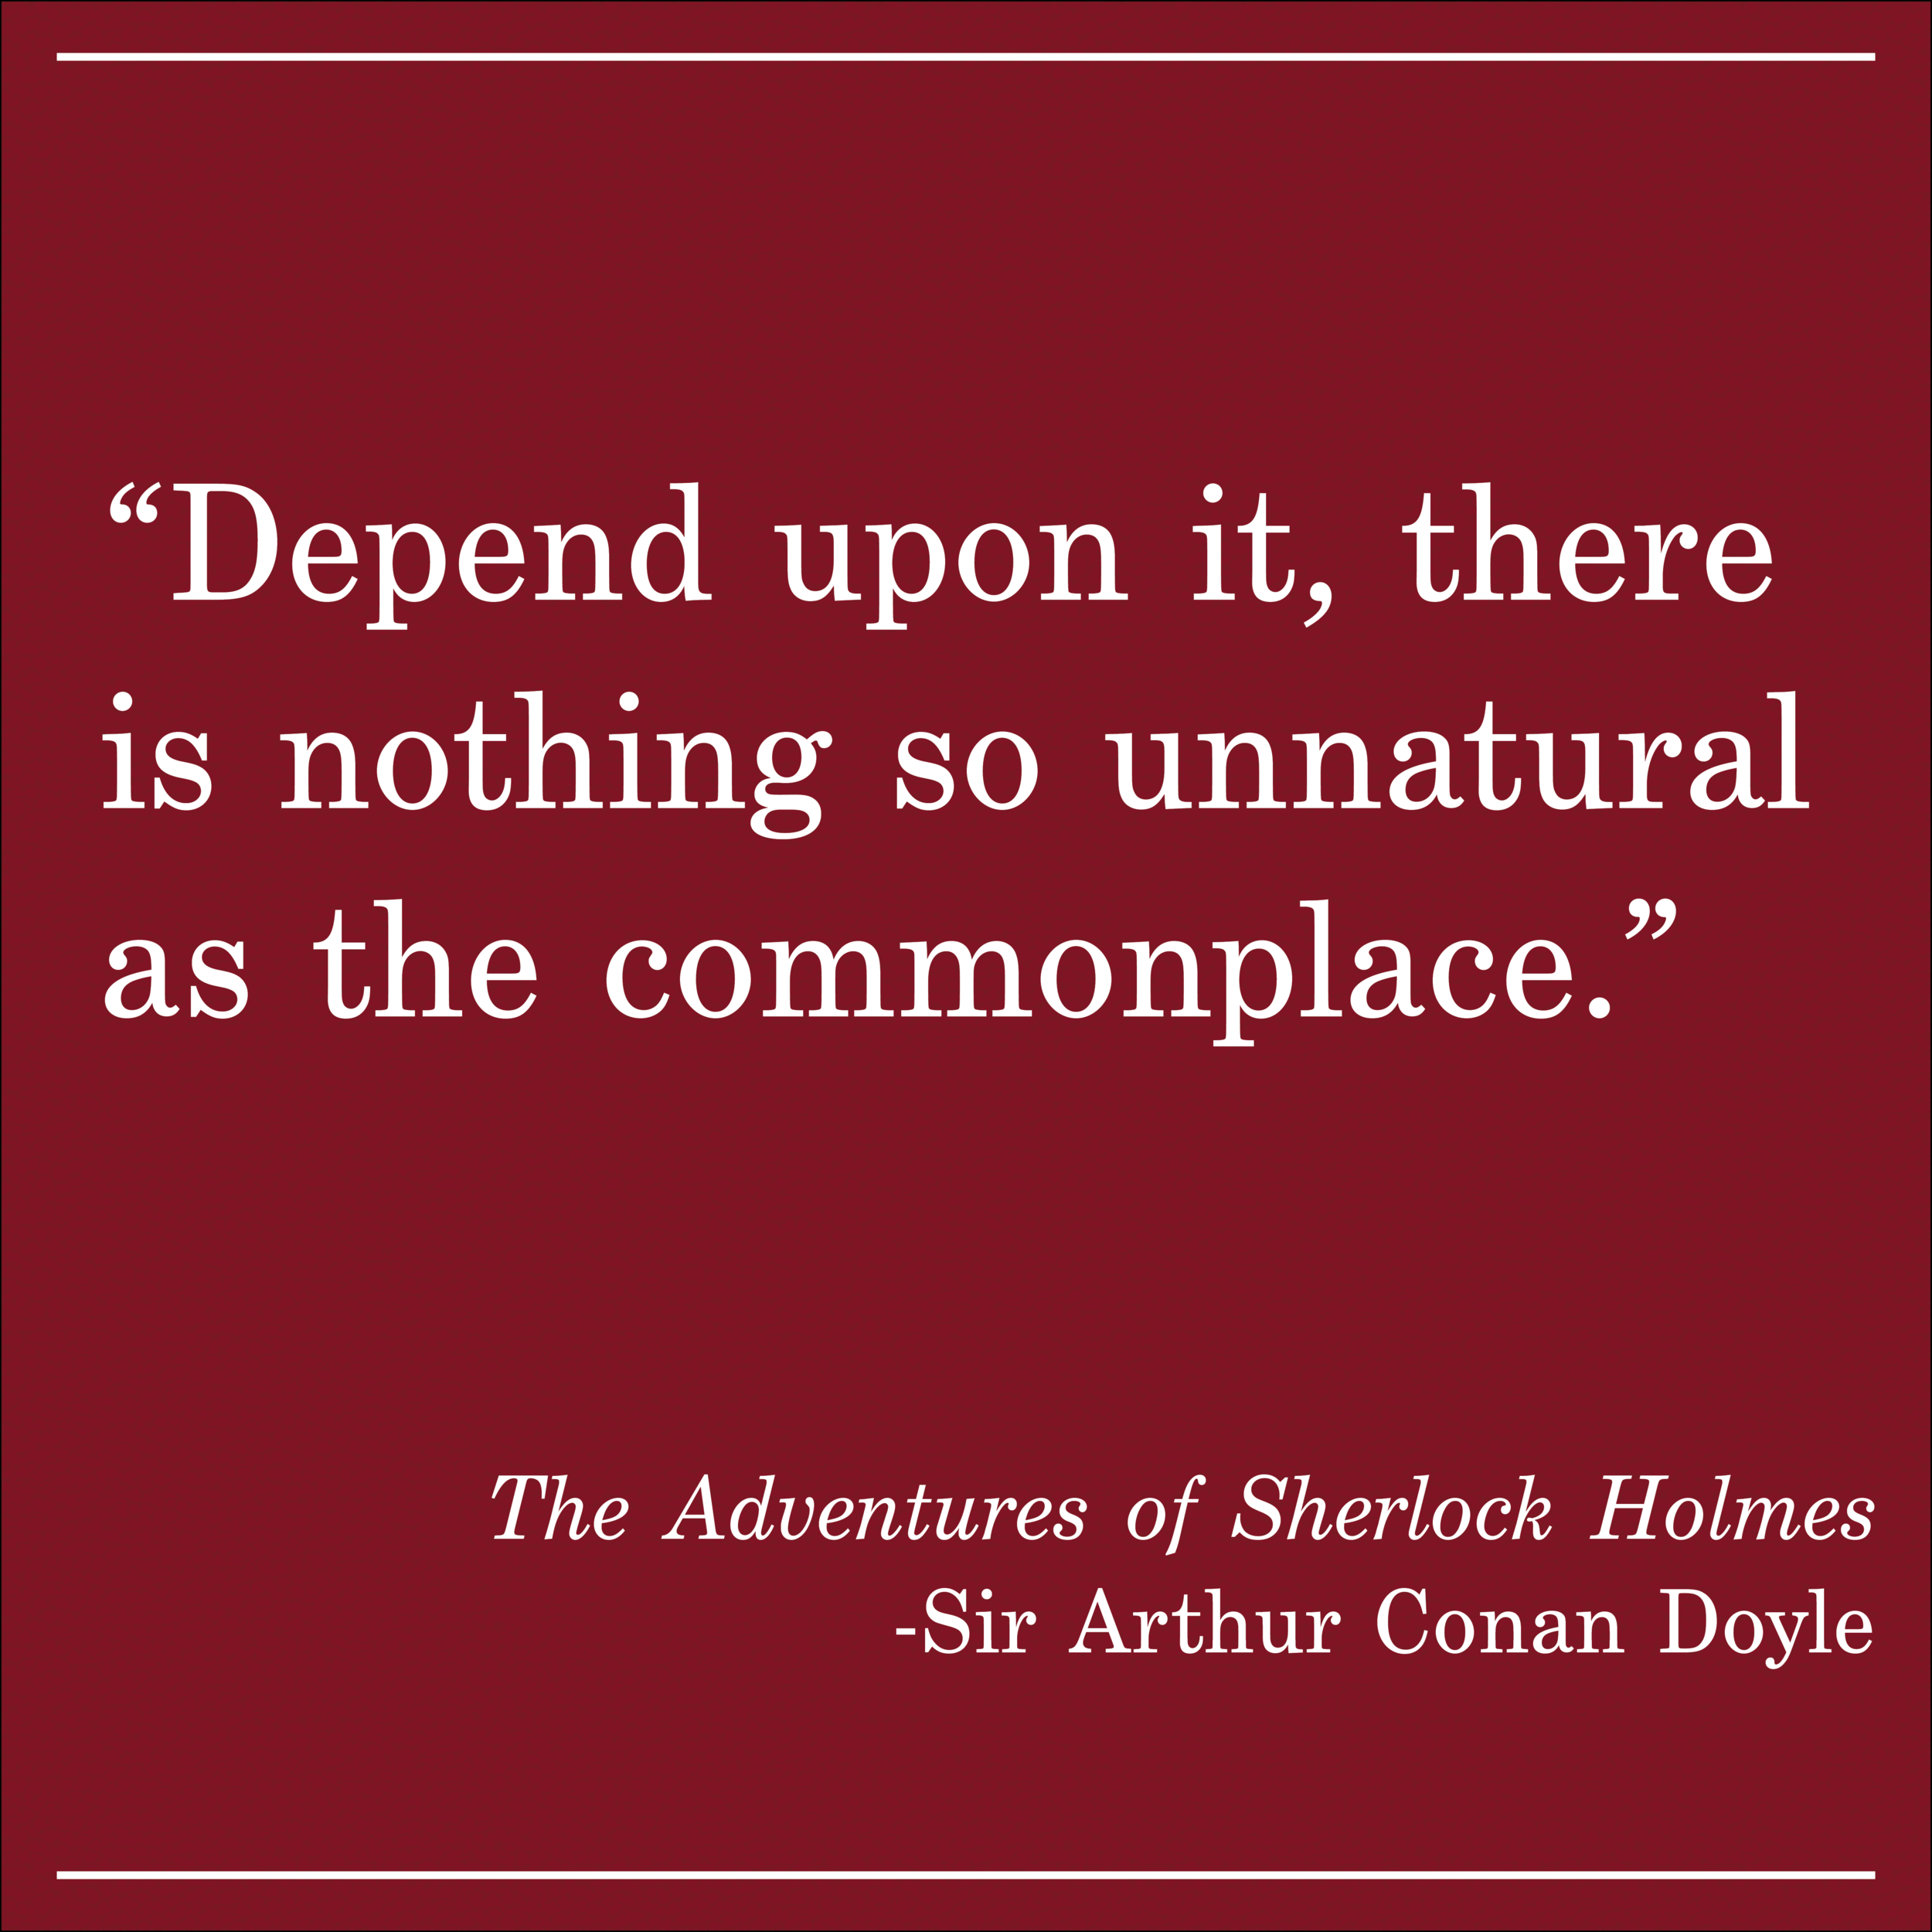 Daily Quote The Adventures of Sherlock Holmes by Sir Arthur Conan Doyle